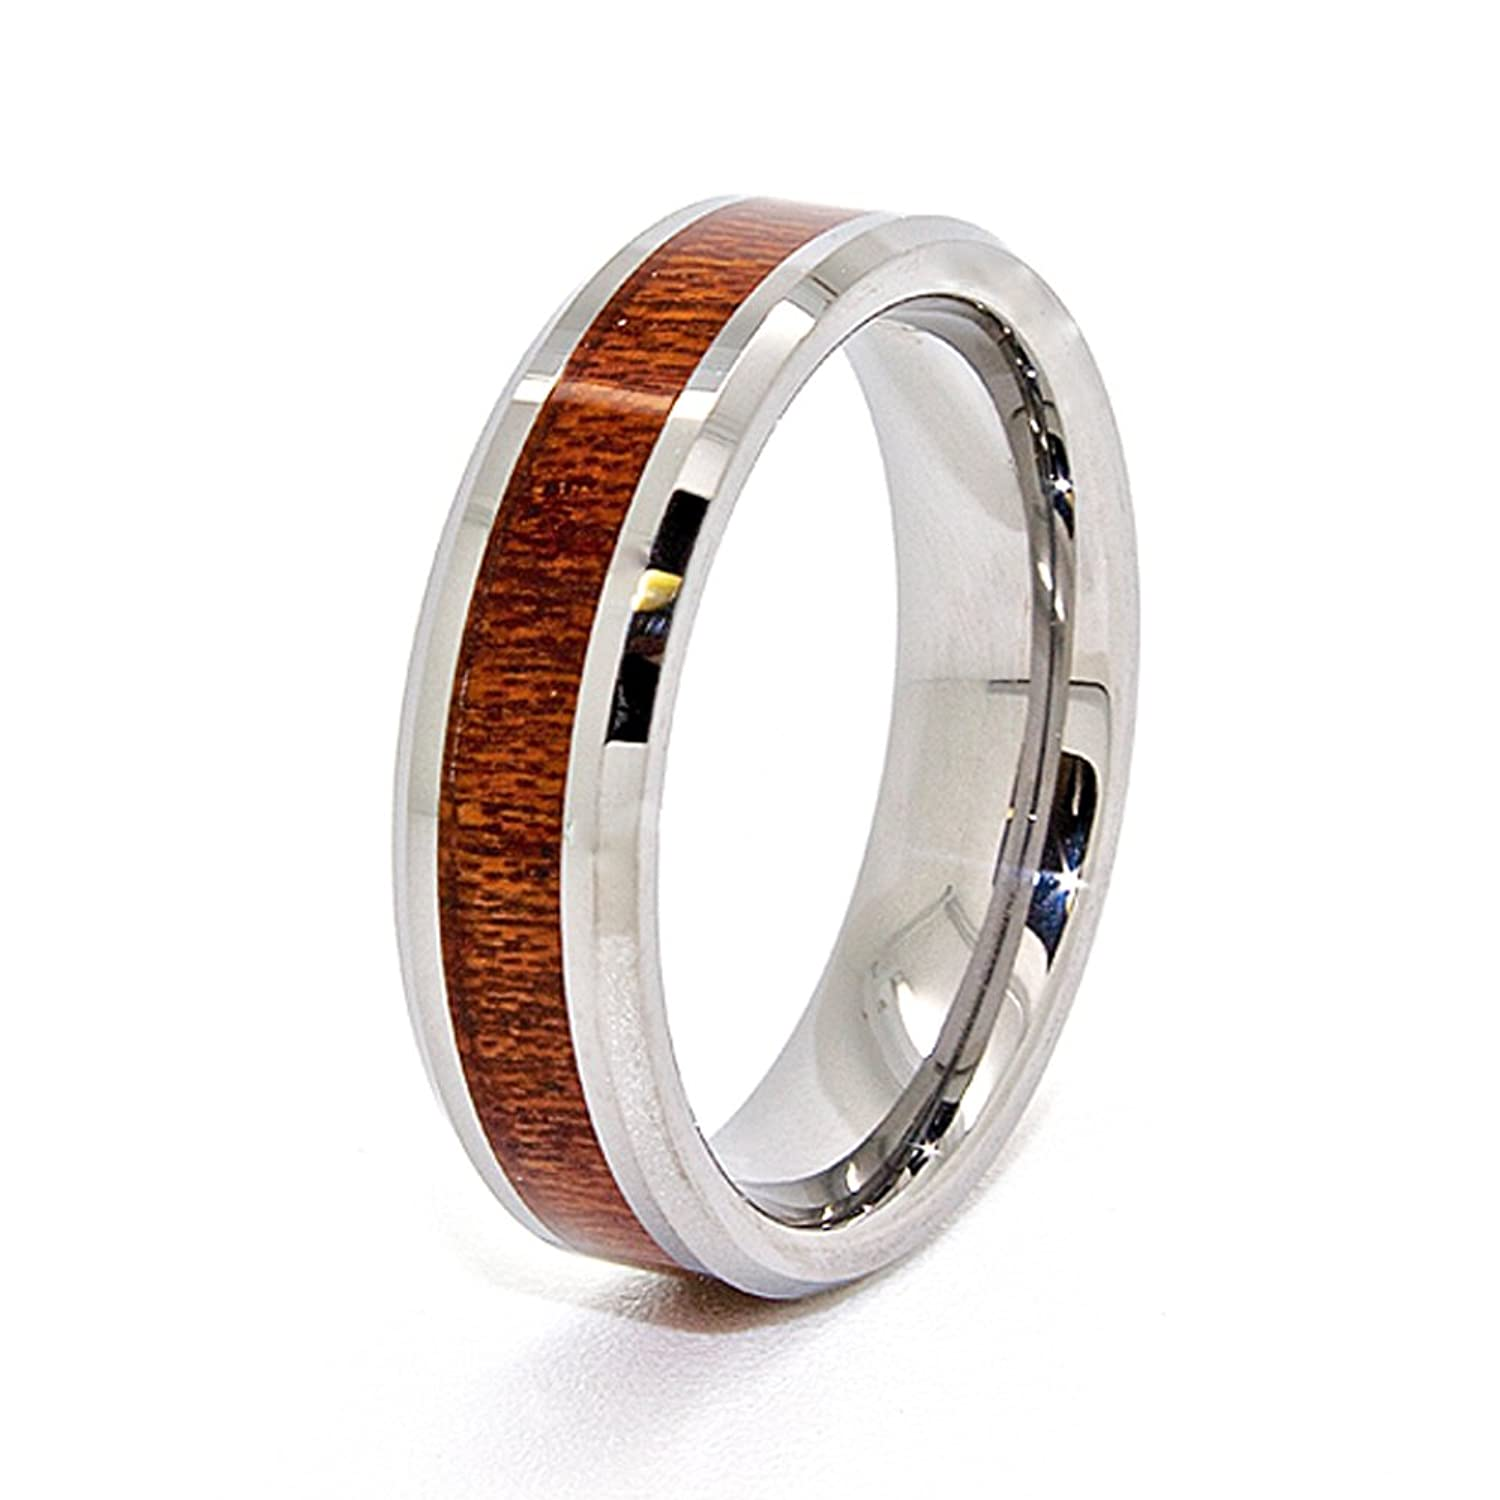 Unique 6mm Tungsten Carbide with Wood Inlay Wedding Band  Available in  Sizes 4 14    Amazon comUnique 6mm Tungsten Carbide with Wood Inlay Wedding Band  . Inlay Wedding Bands. Home Design Ideas